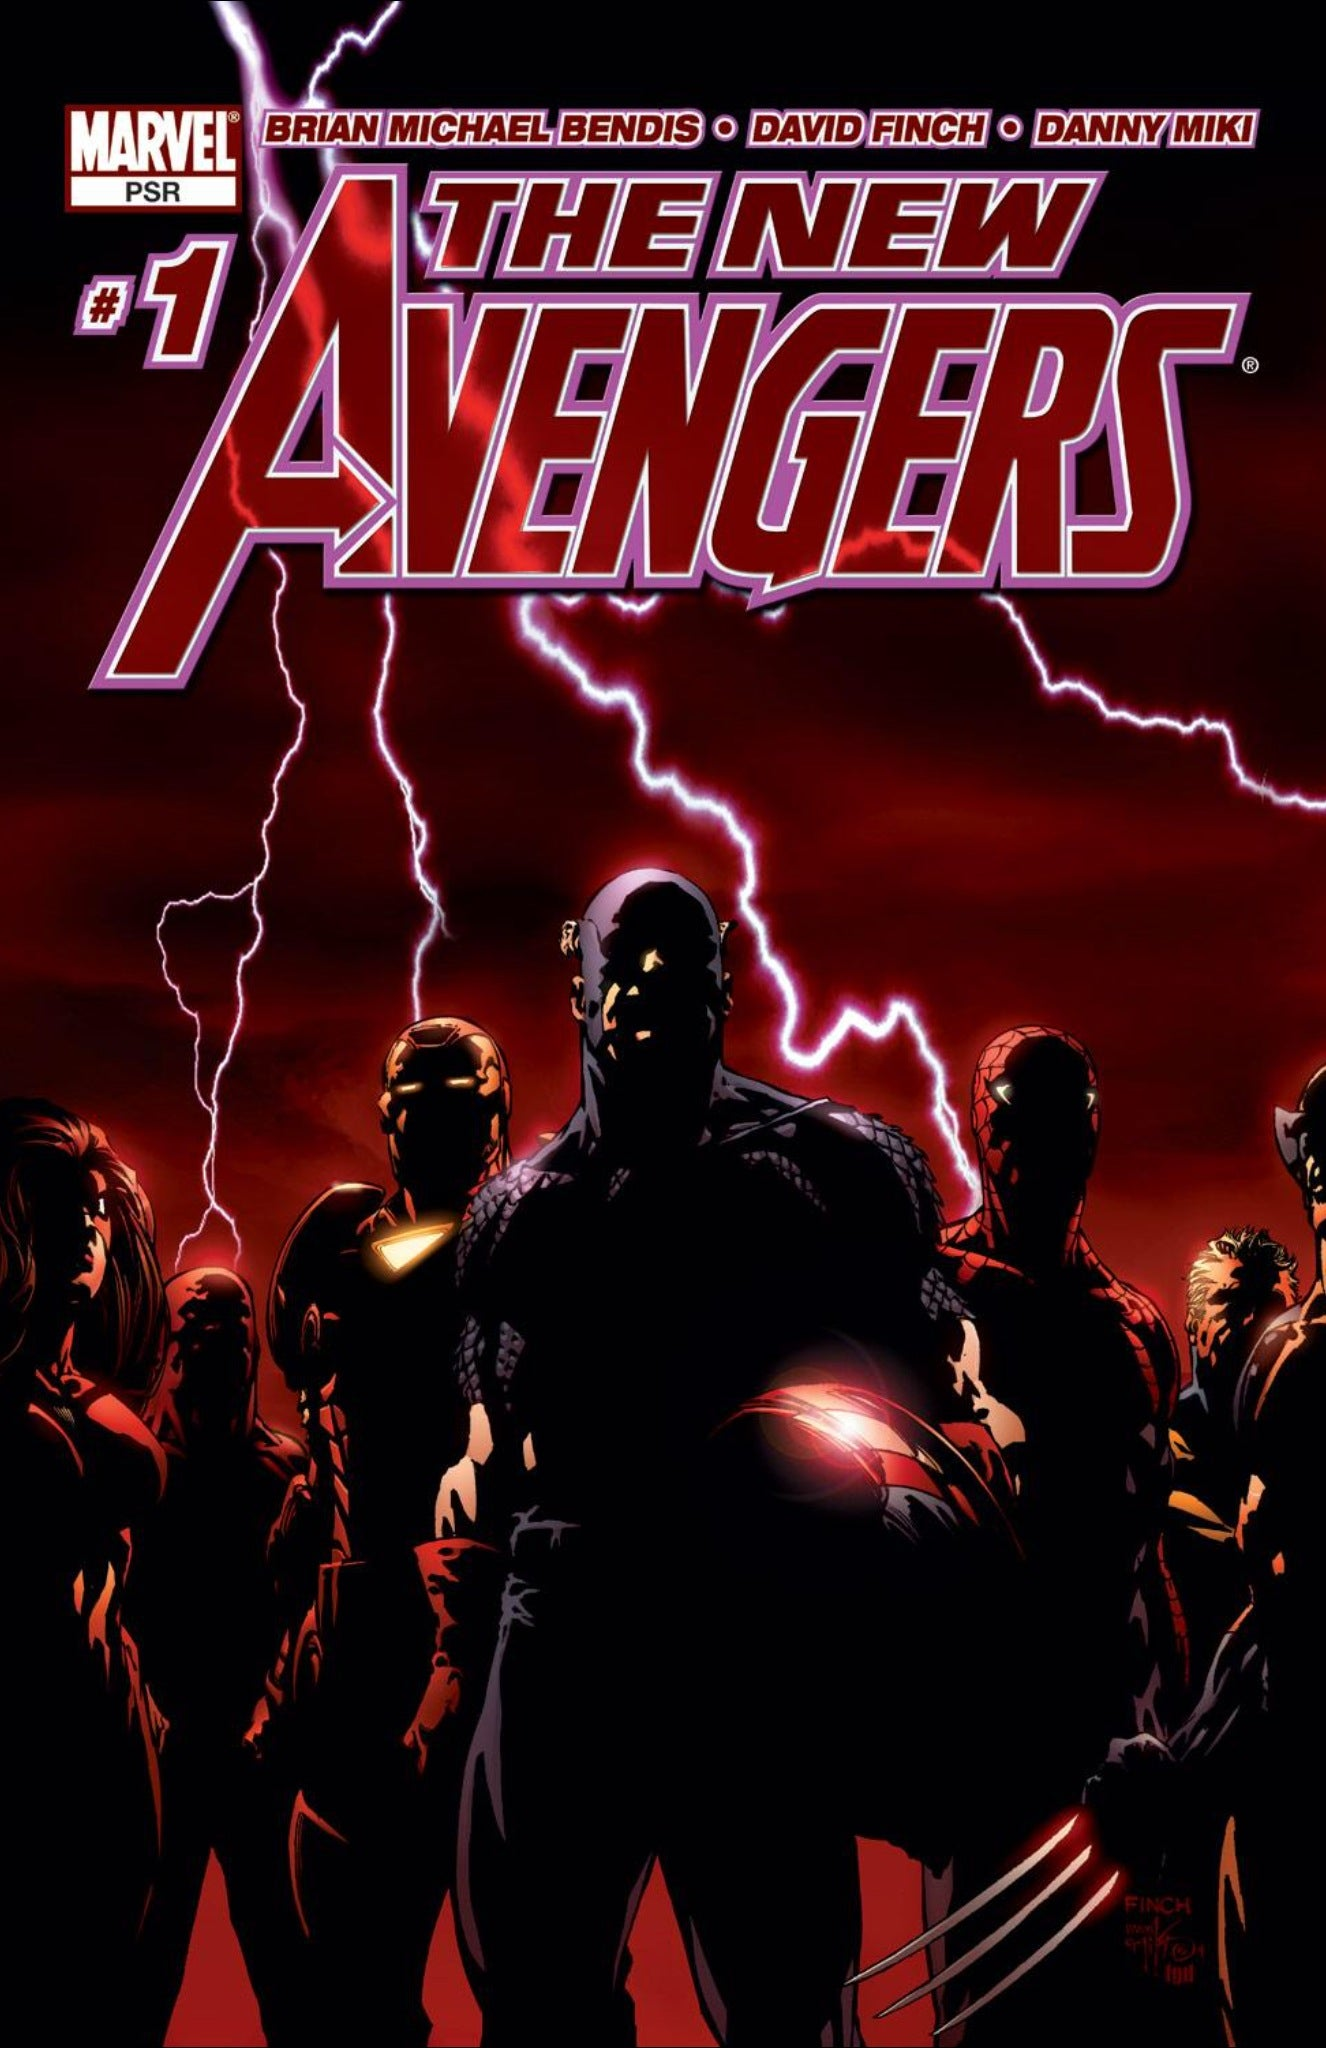 New-Avengrs-1-cover